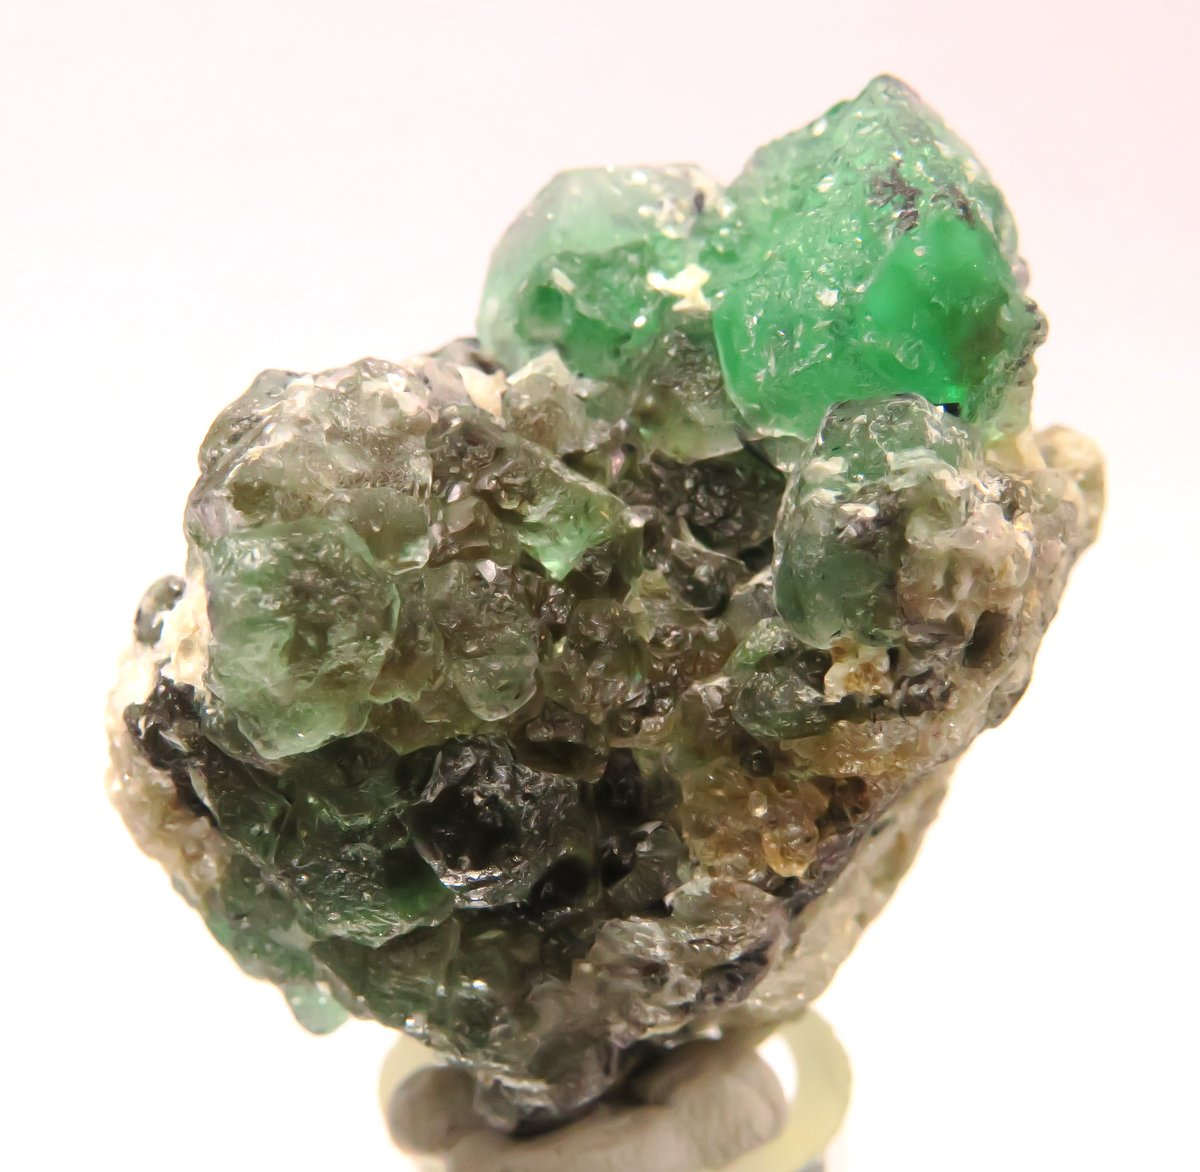 Fluorite On Orthoclase